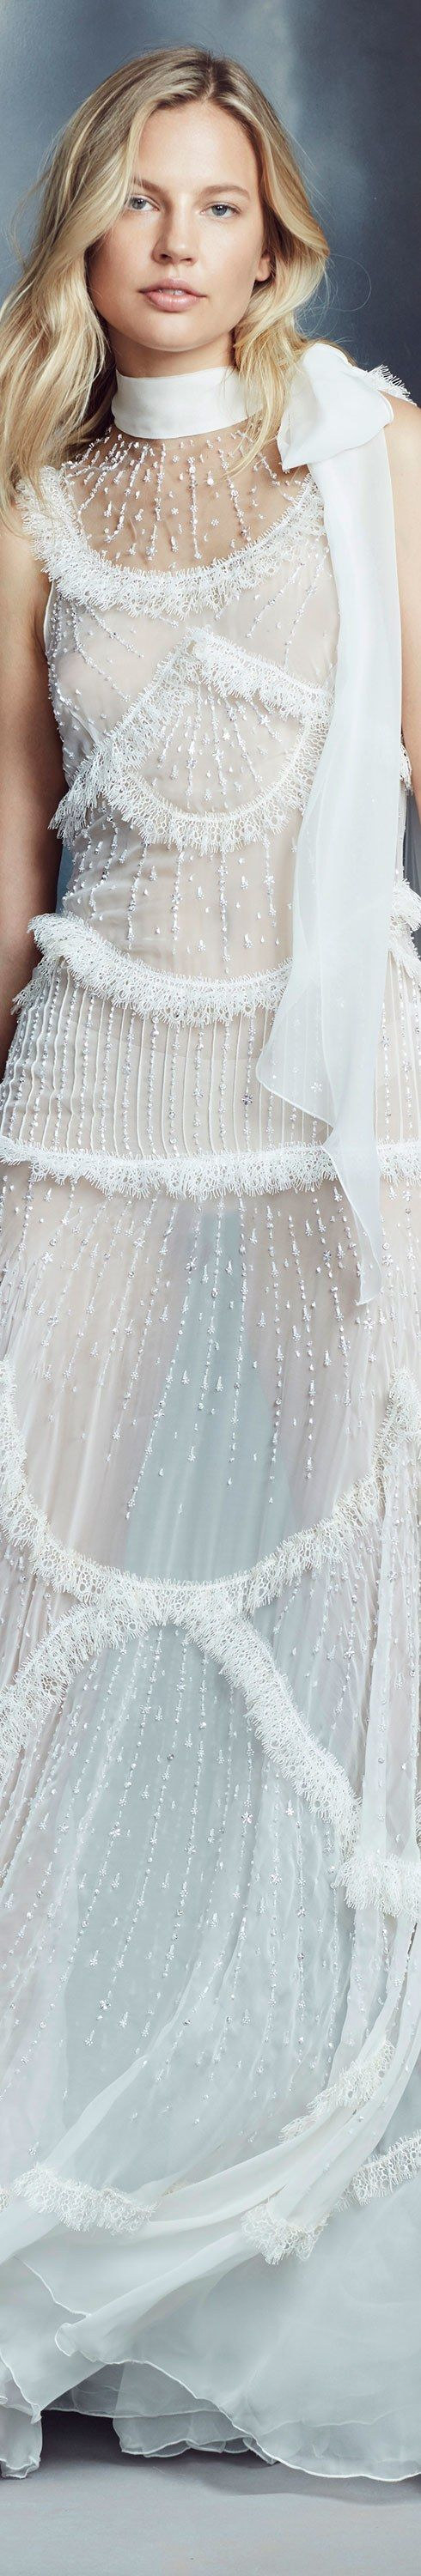 1429 best Zuhair Murad images on Pinterest | Couture, High fashion ...